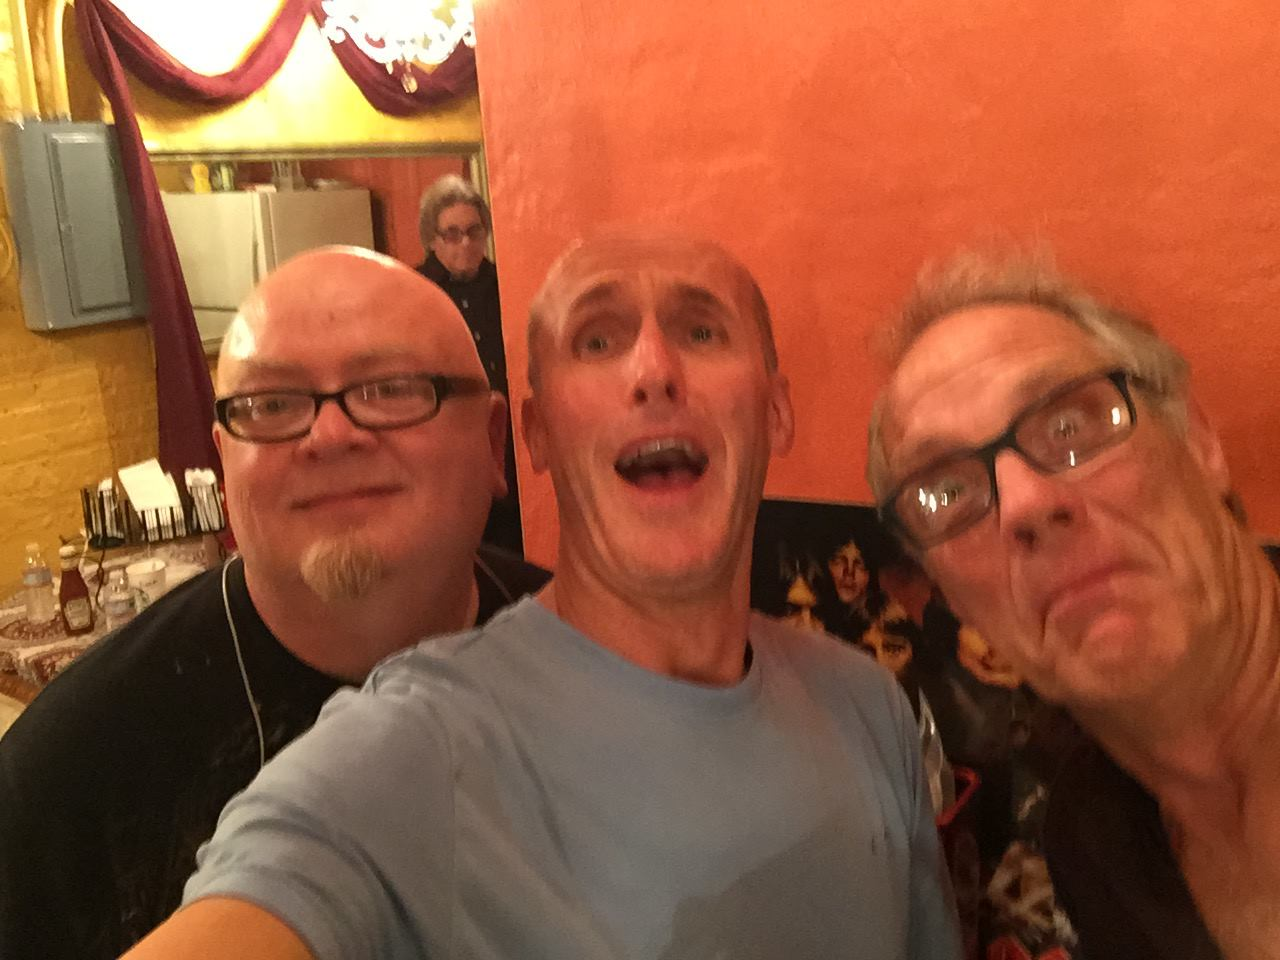 WITH MY BUDDIES CHARLEY MORGAN FROM ORLEANS AND BURLEIGH DRUMMOND FROM AMBROSIA.jpg